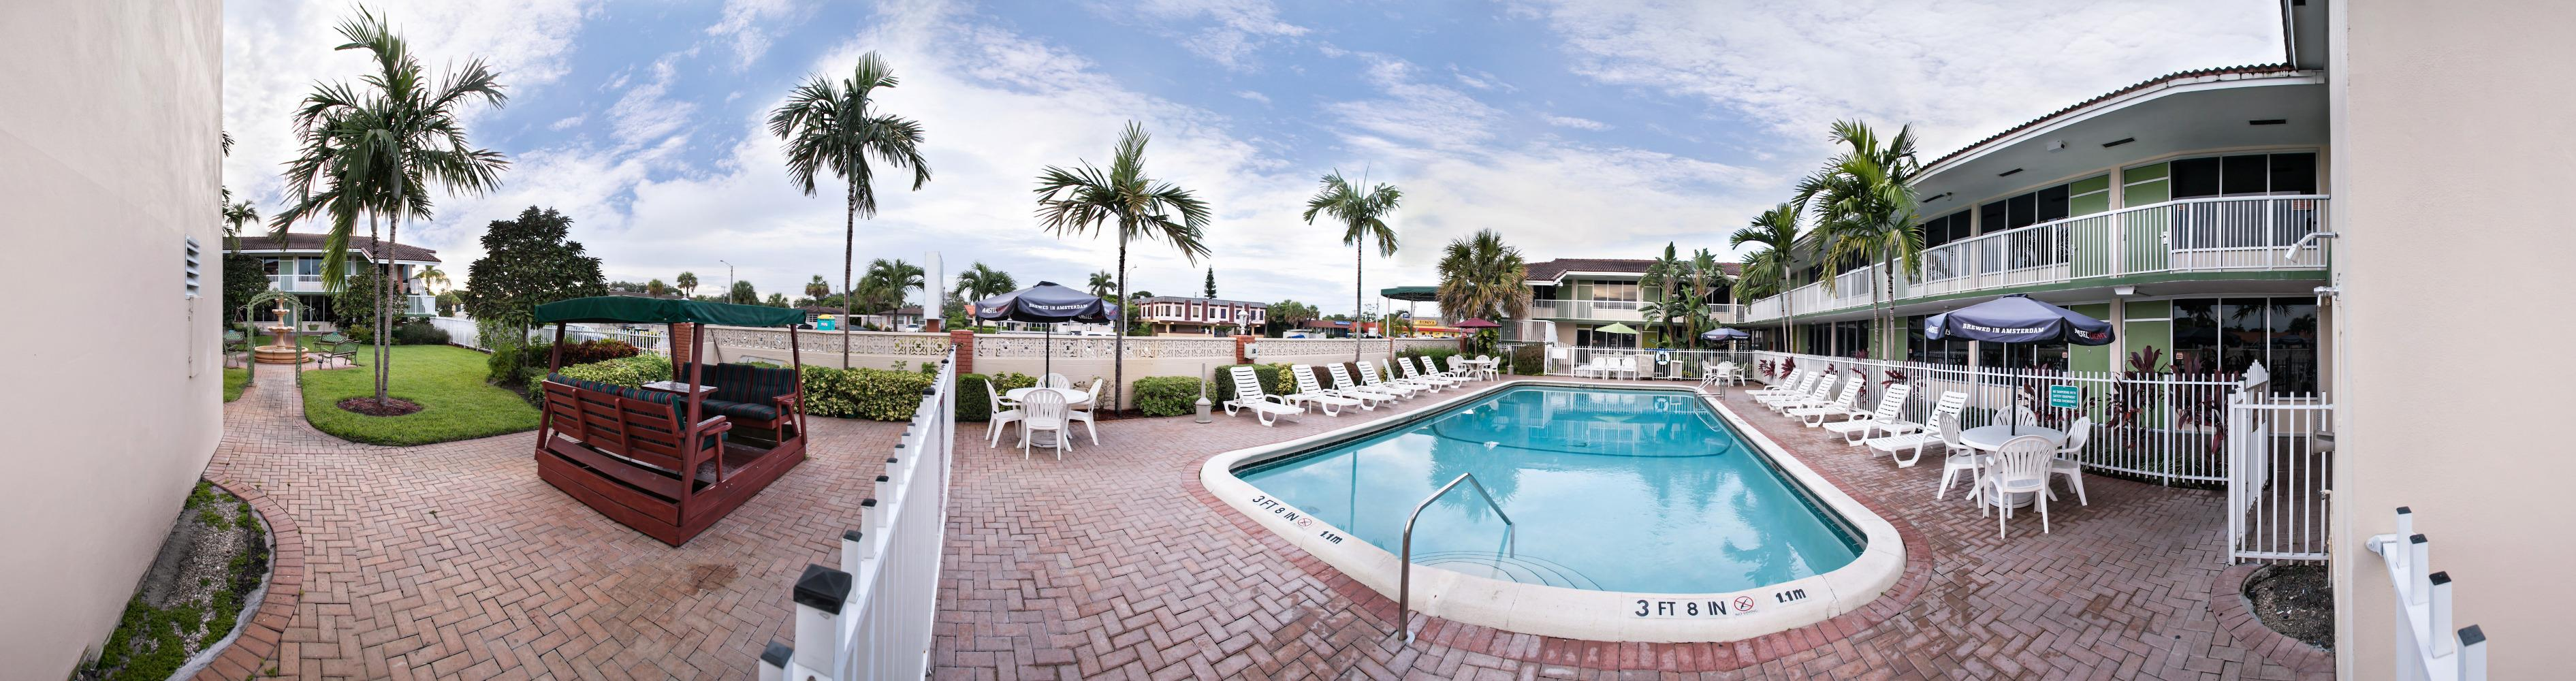 Quality Inn & Suites Hollywood Boulevard Cruise Port Hotel